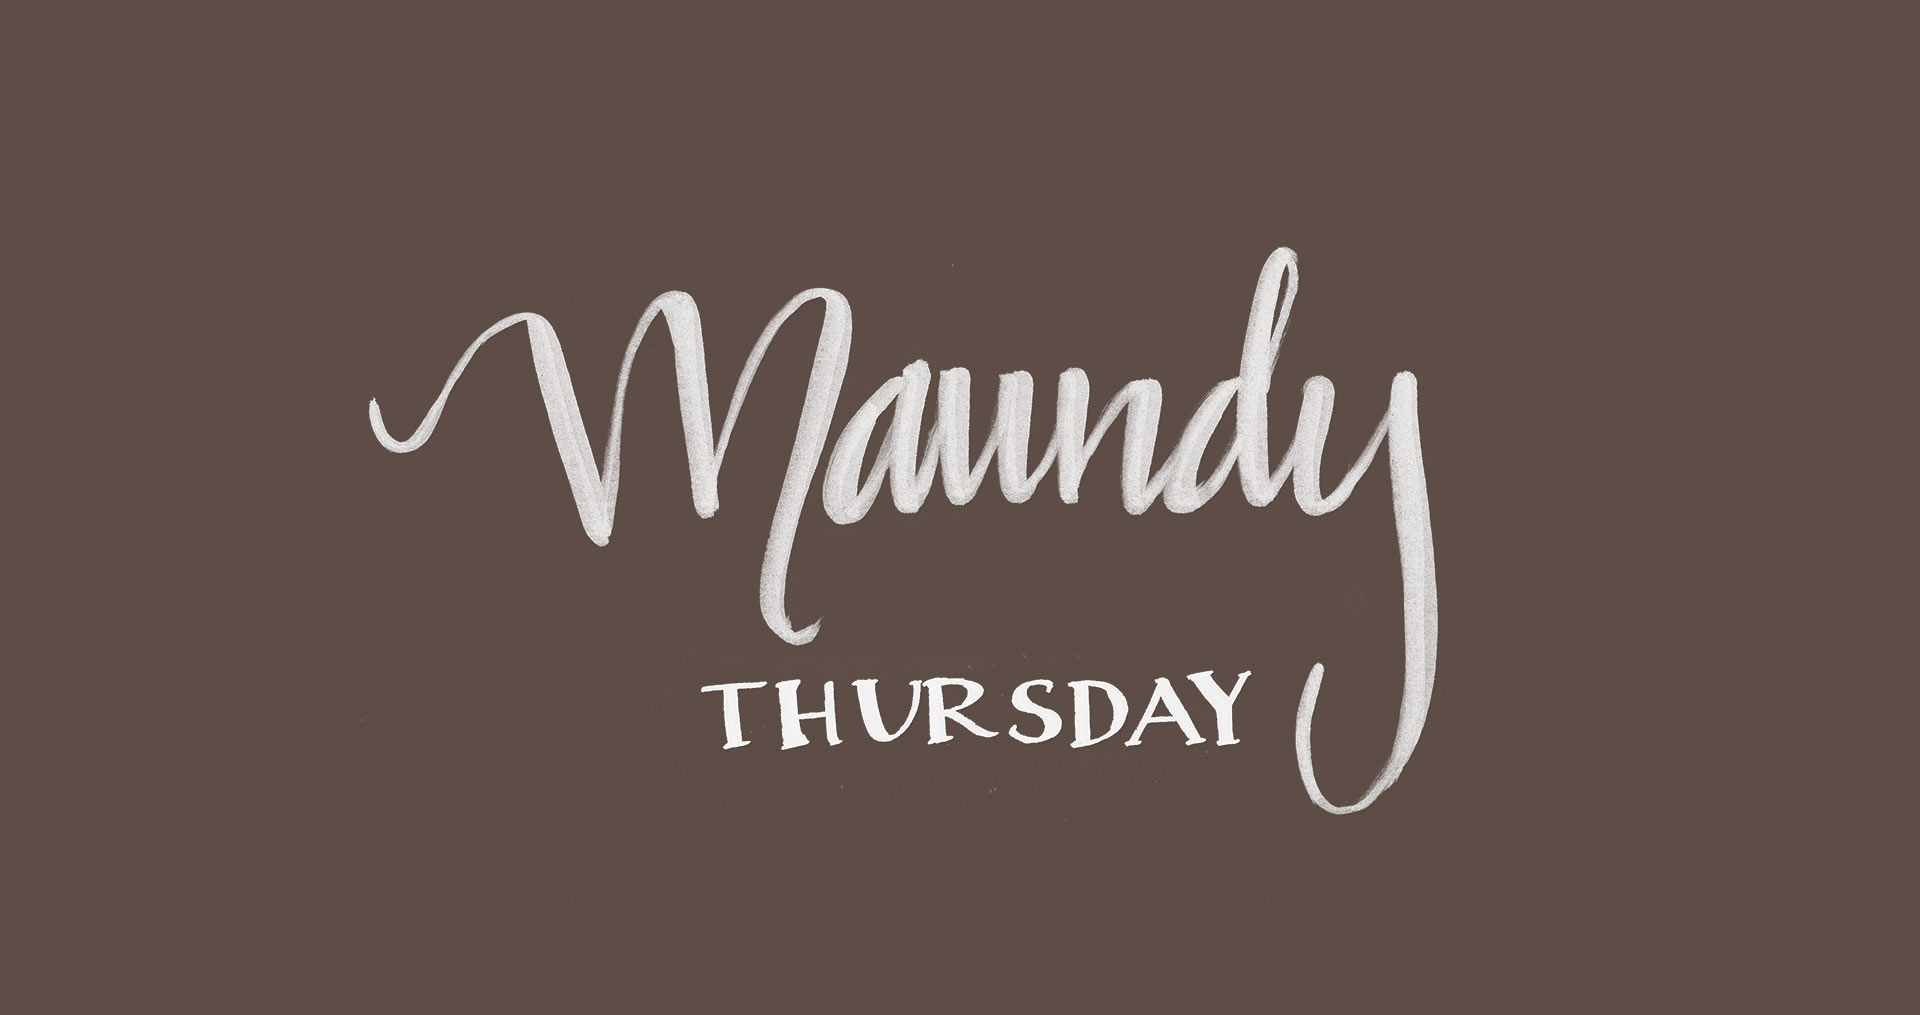 maundy thursday latest news images and photos crypticimages